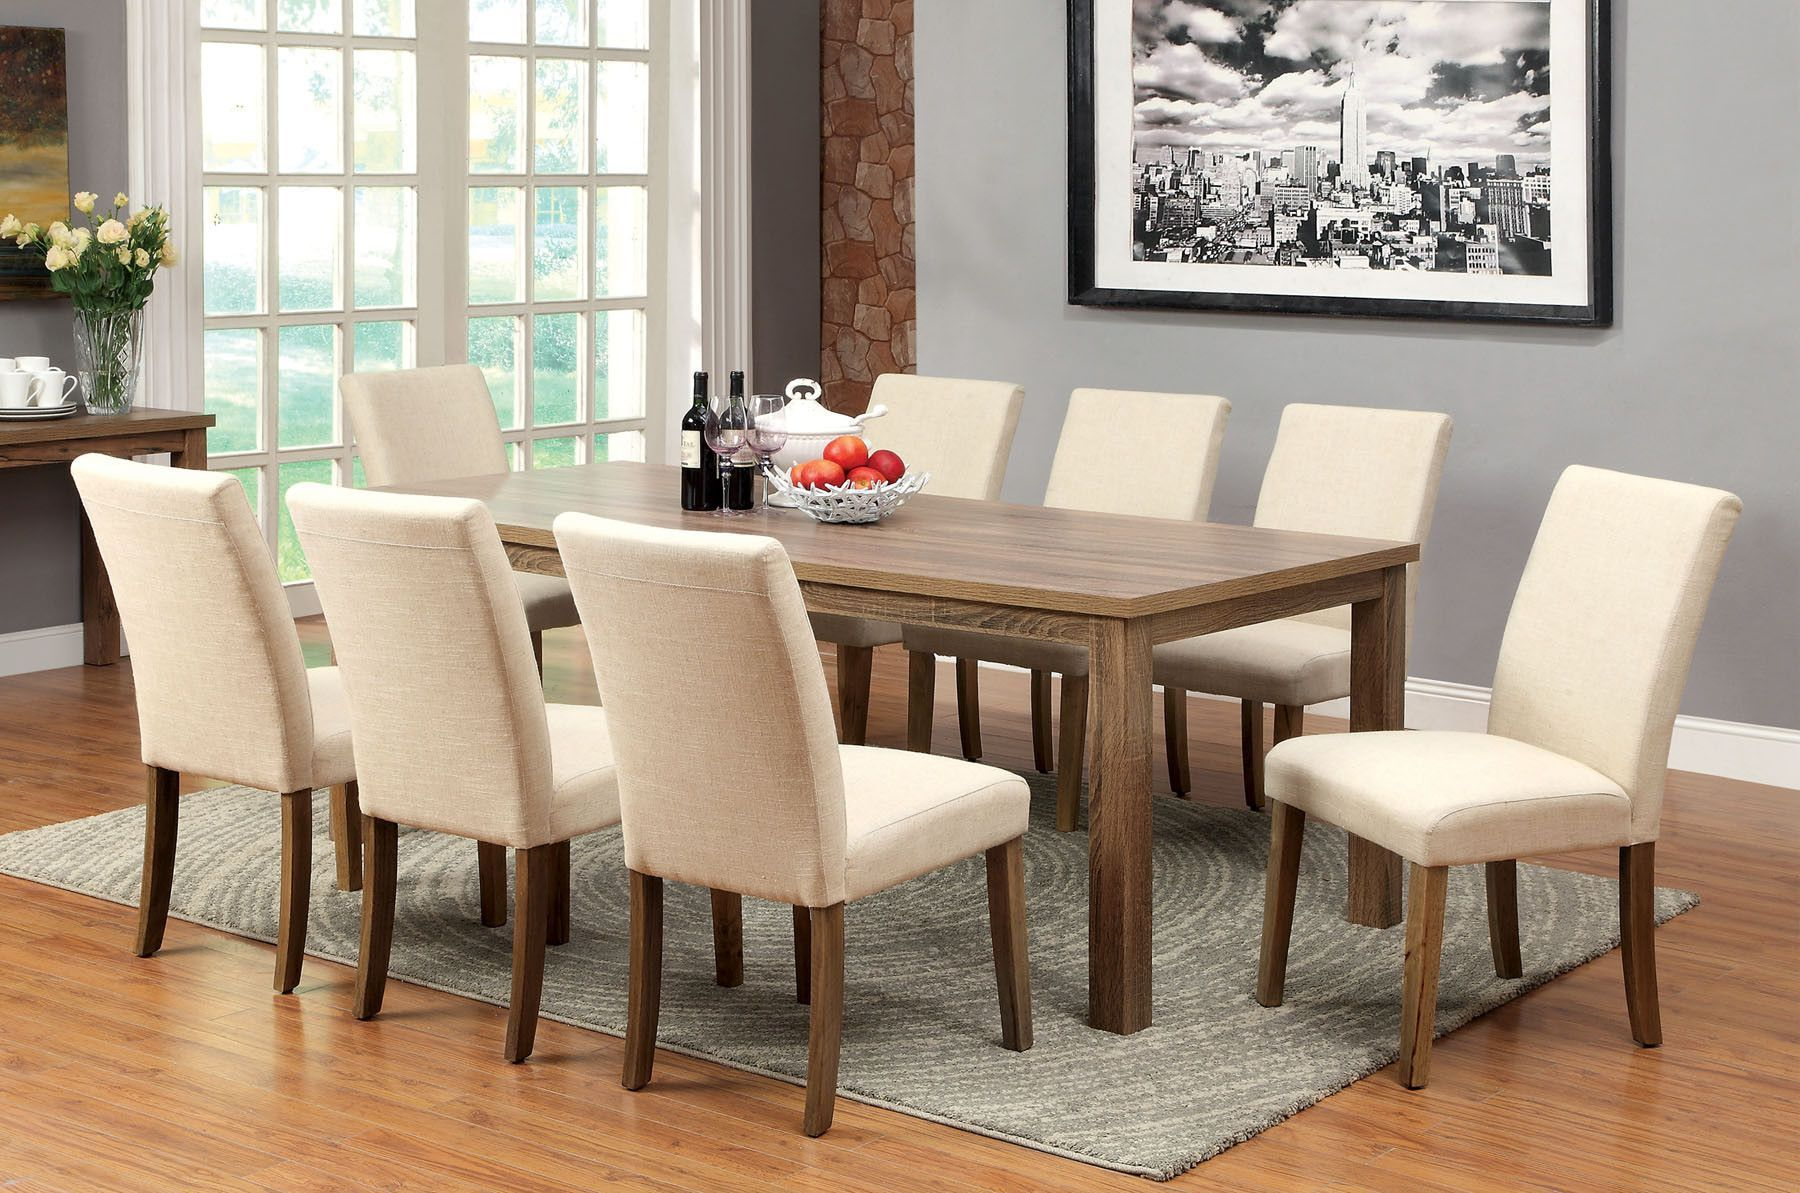 Soreen 9 Pcs White Dining Table & Chairs Set Cm3554T  Products Gorgeous 9 Pcs Dining Room Set Design Decoration